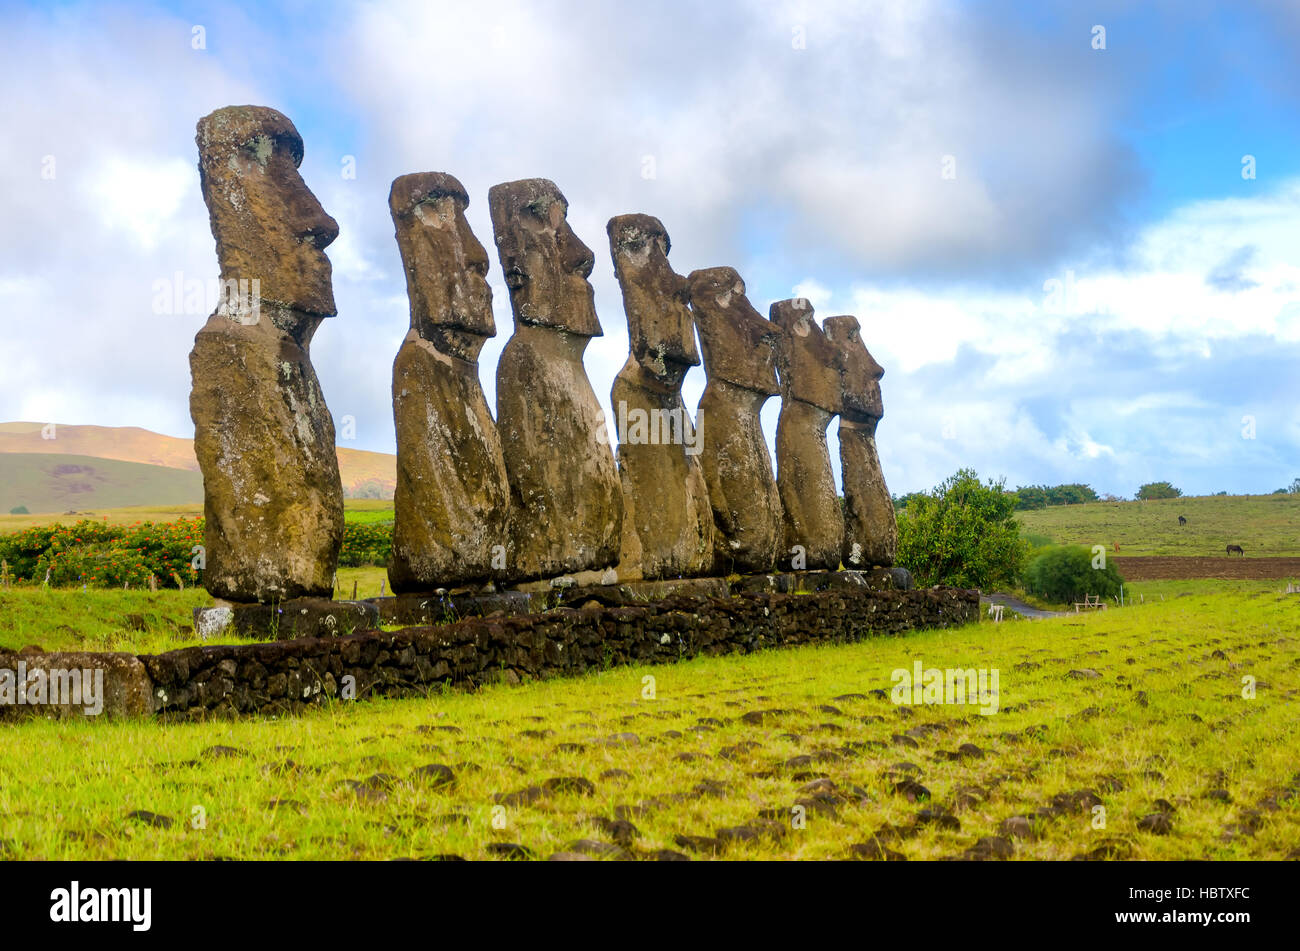 Seven Moai statues watching over Easter Island, Chile - Stock Image